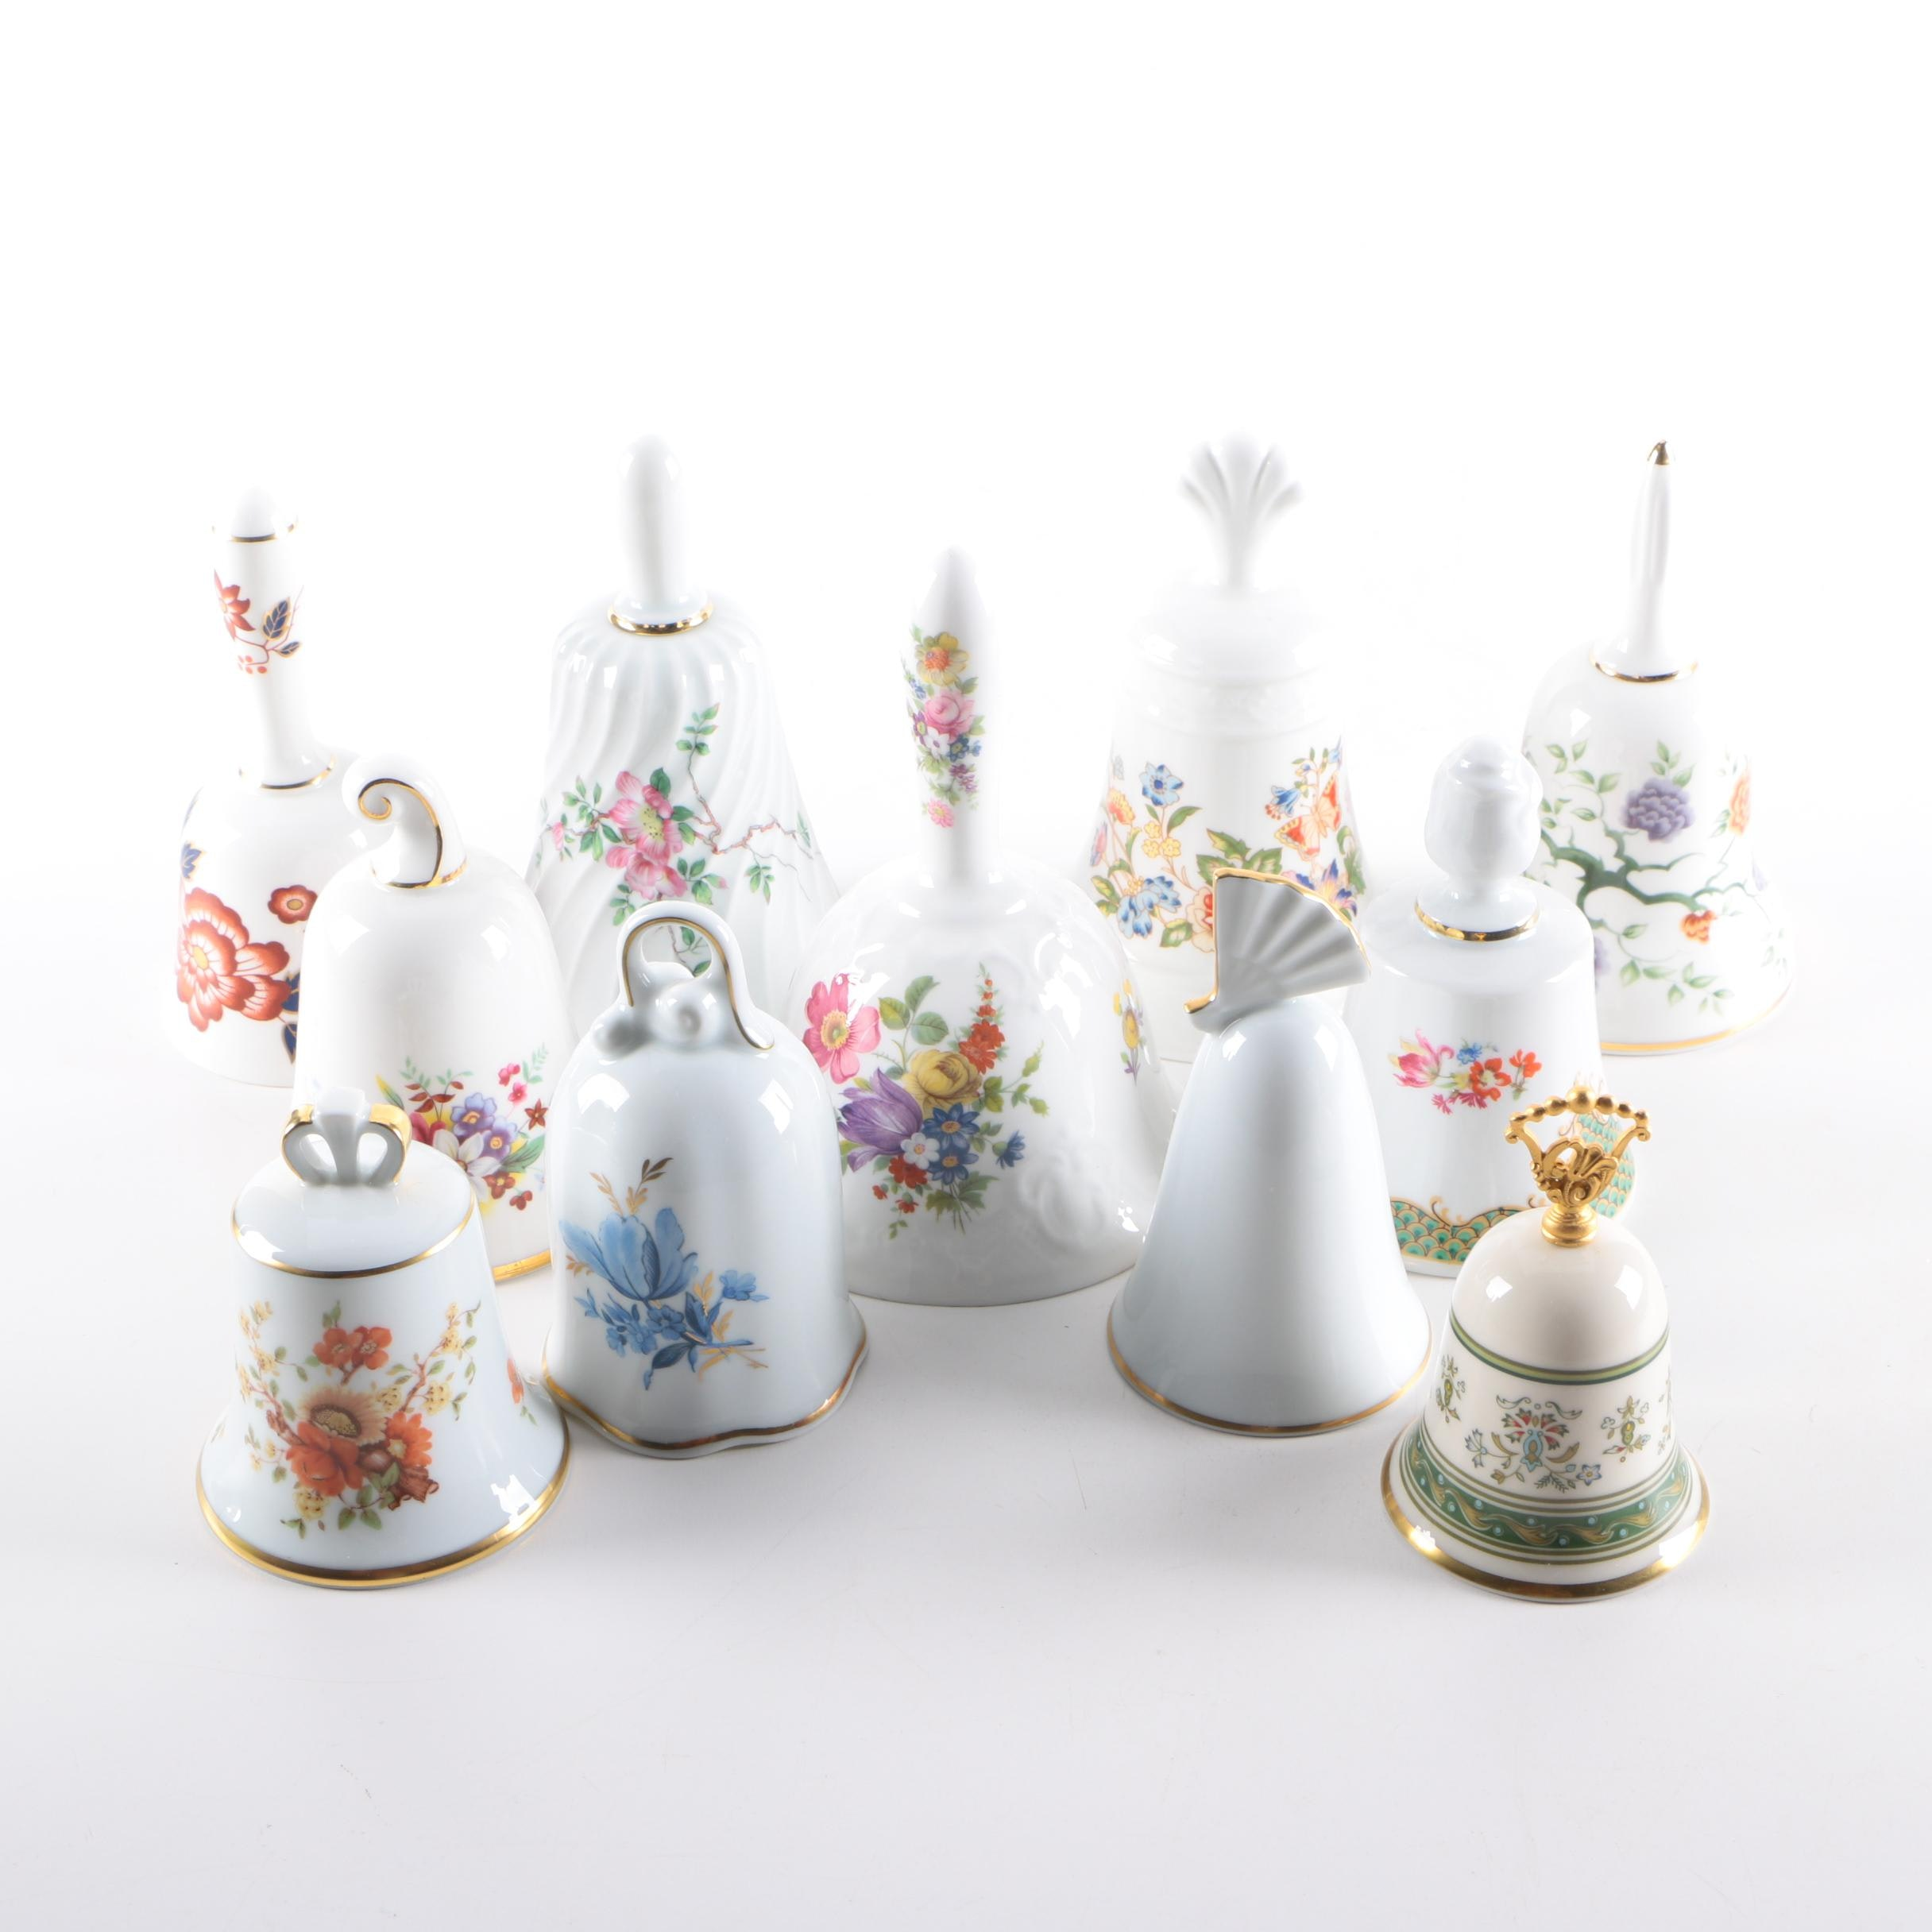 Decorative Porcelain Bells, Including Limoges and Crown for The Danbury Mint